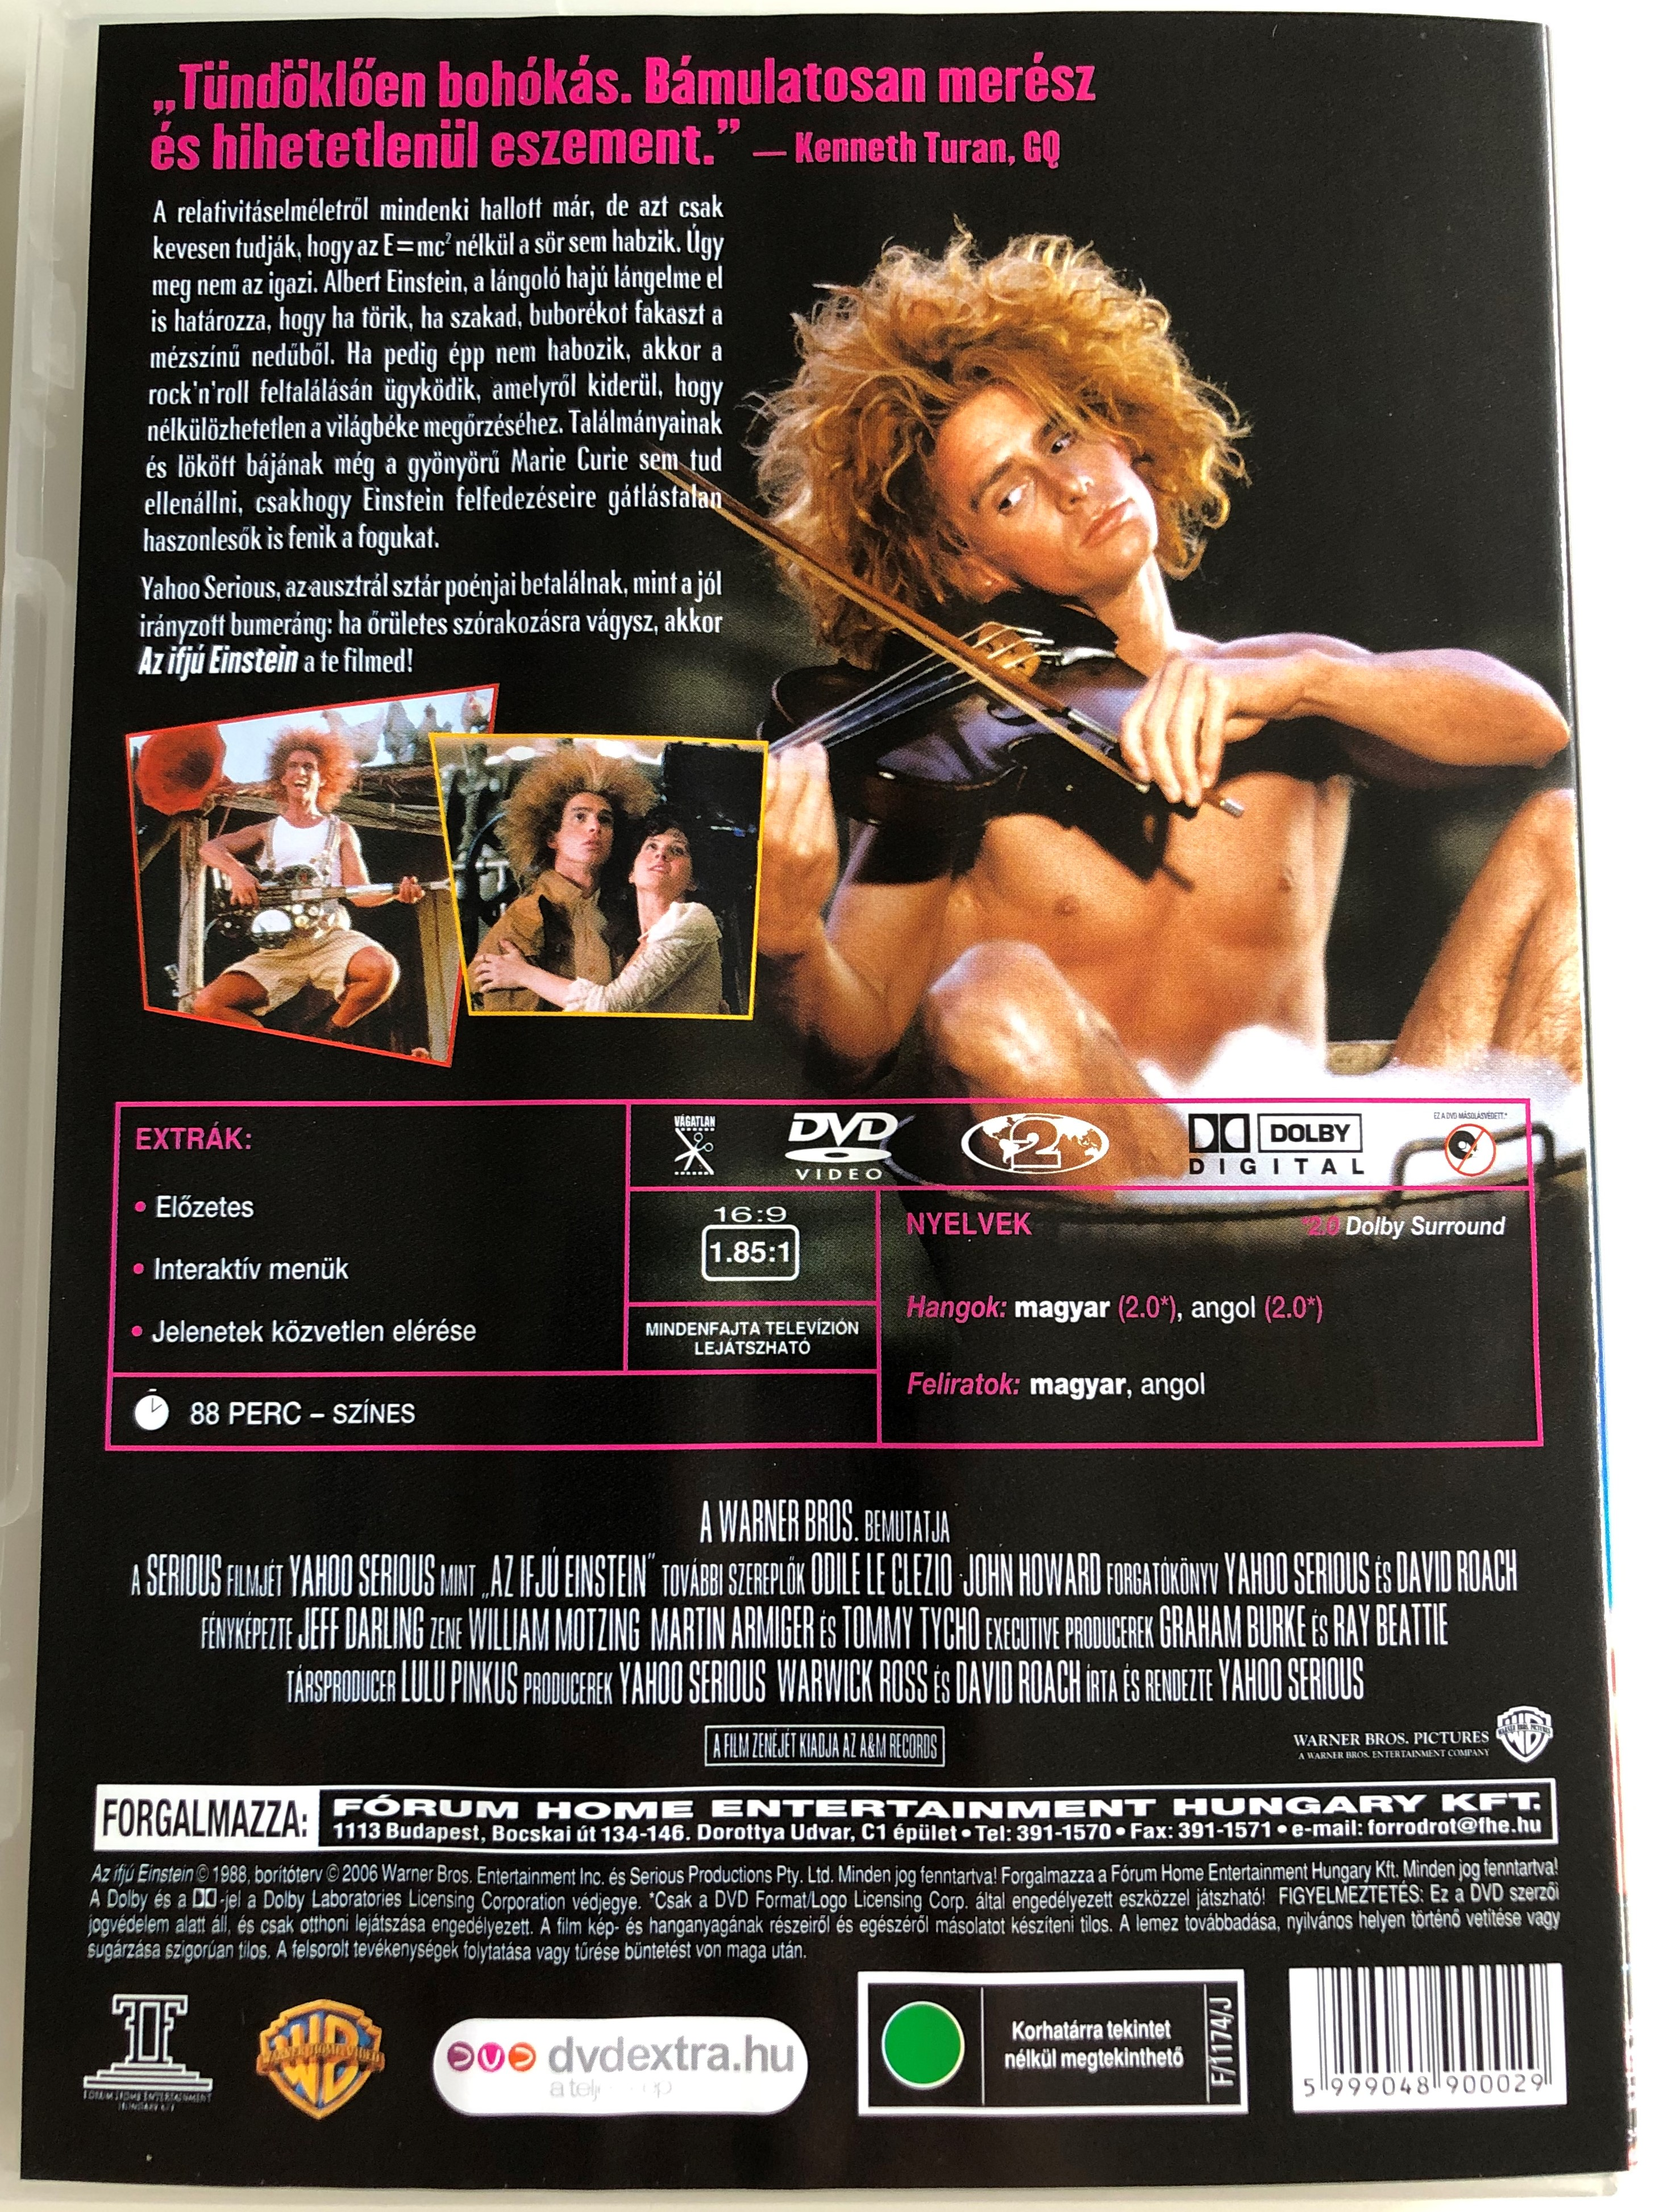 young-einstein-dvd-1988-az-ifj-einstein-directed-by-yahoo-serious-starring-yahoo-serious-odile-le-clezio-john-howard-2-.jpg